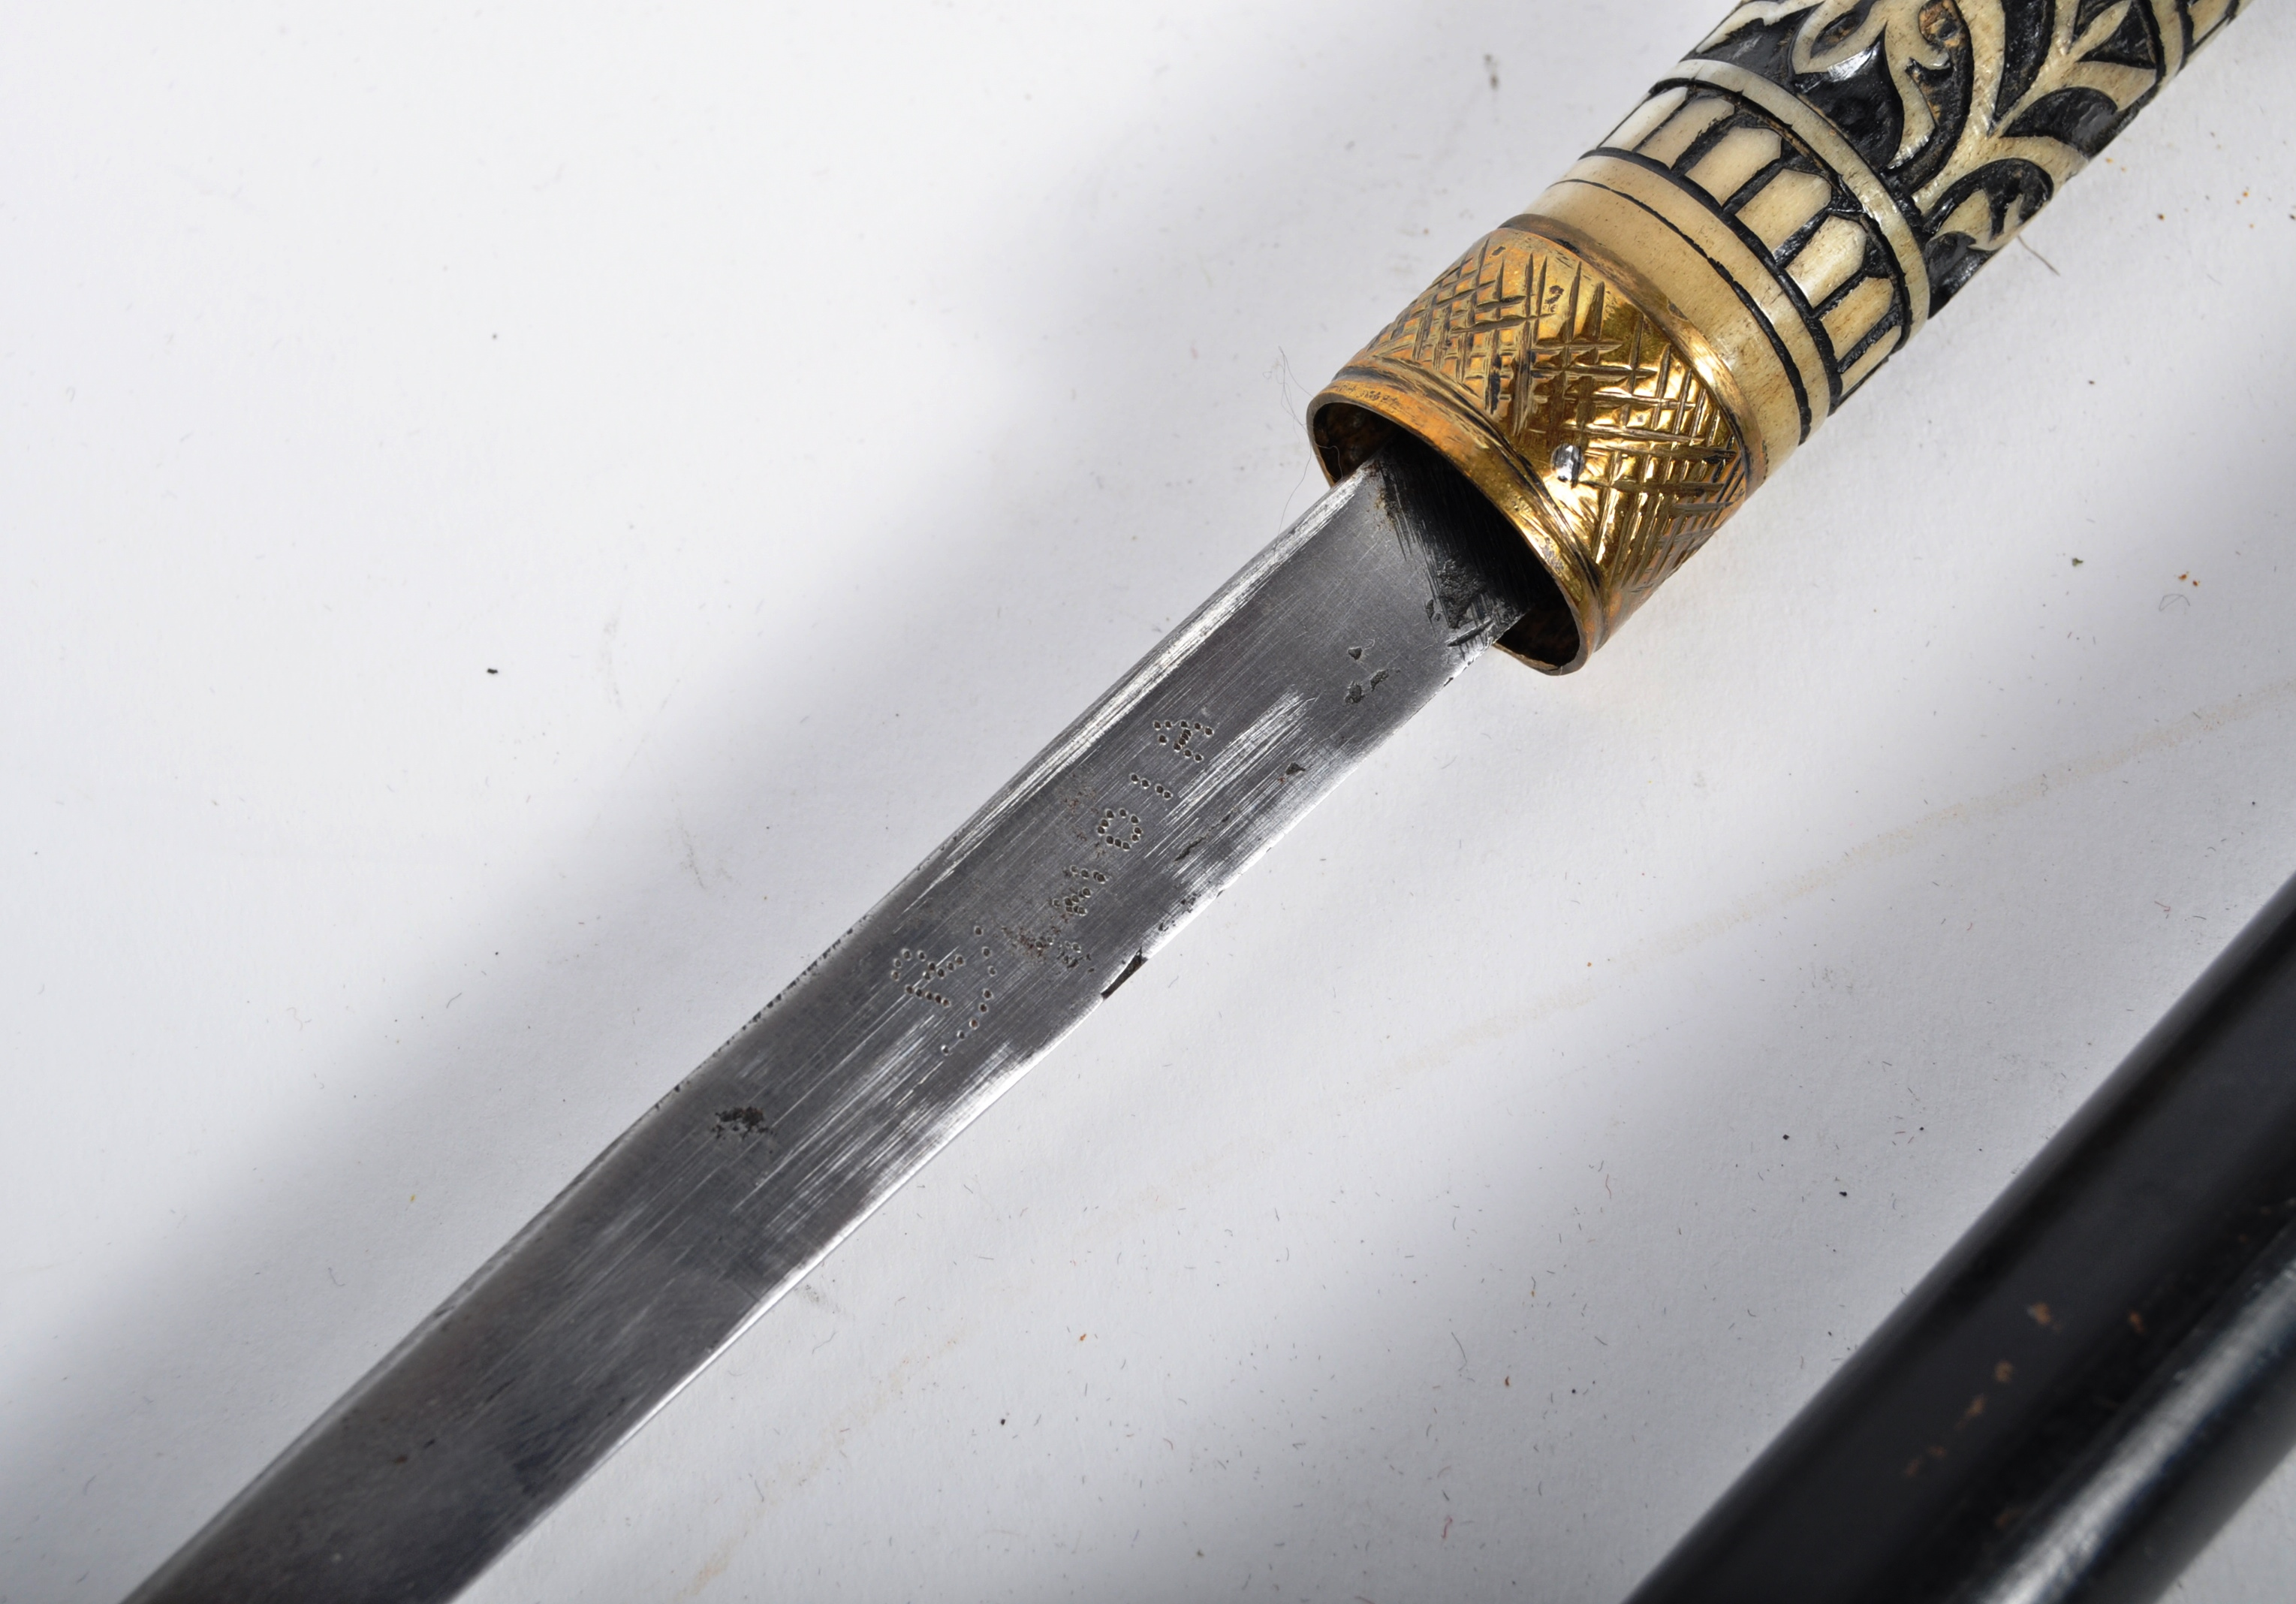 LATE 19TH CENTURY INDIAN SWAGGER STICK WITH CONSEALED BLADE - Image 4 of 7